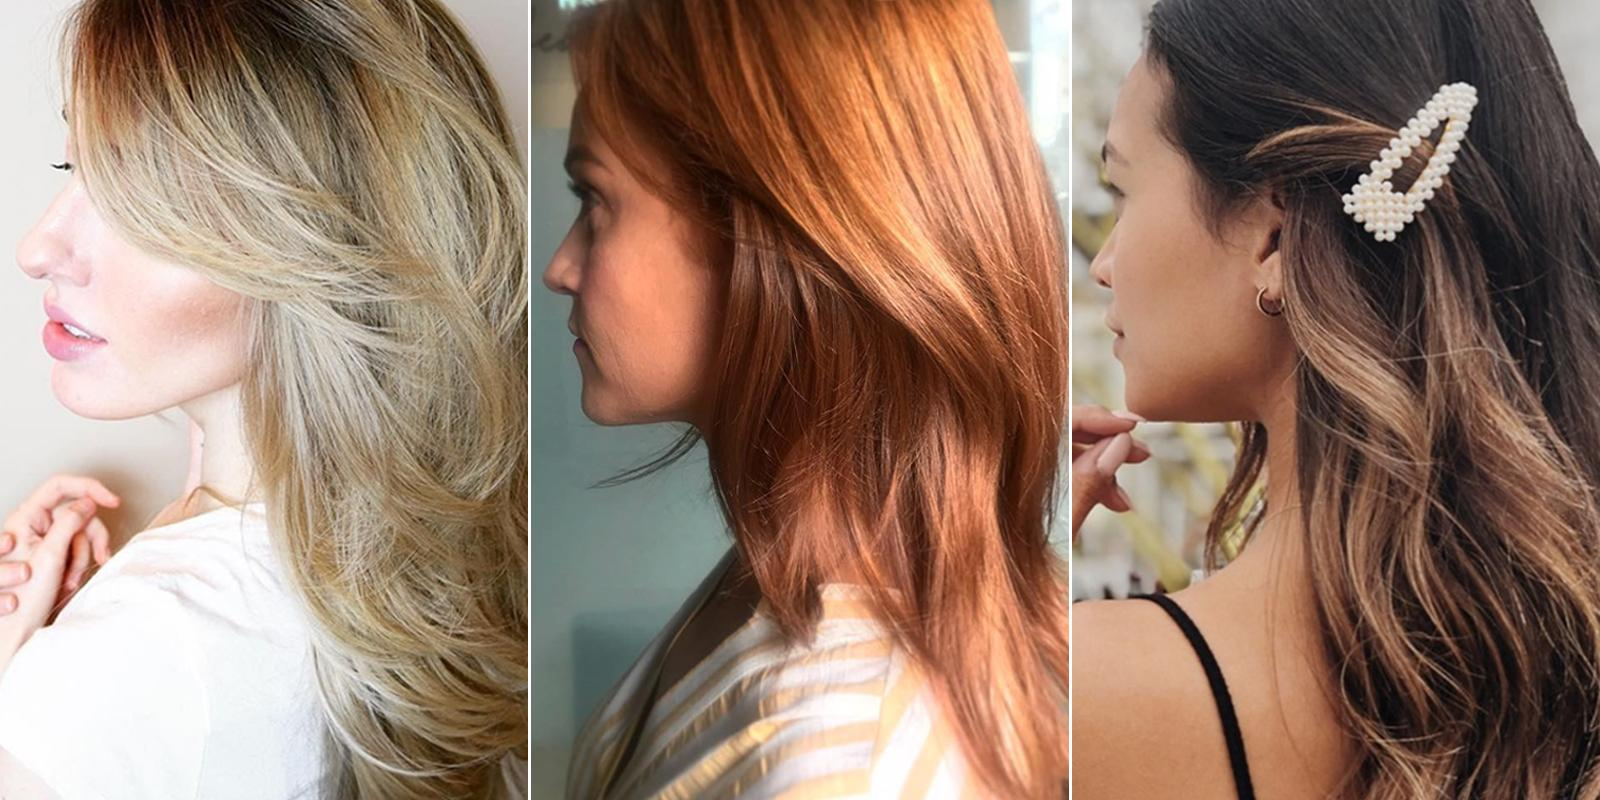 Side profiles of three women with beautiful hair